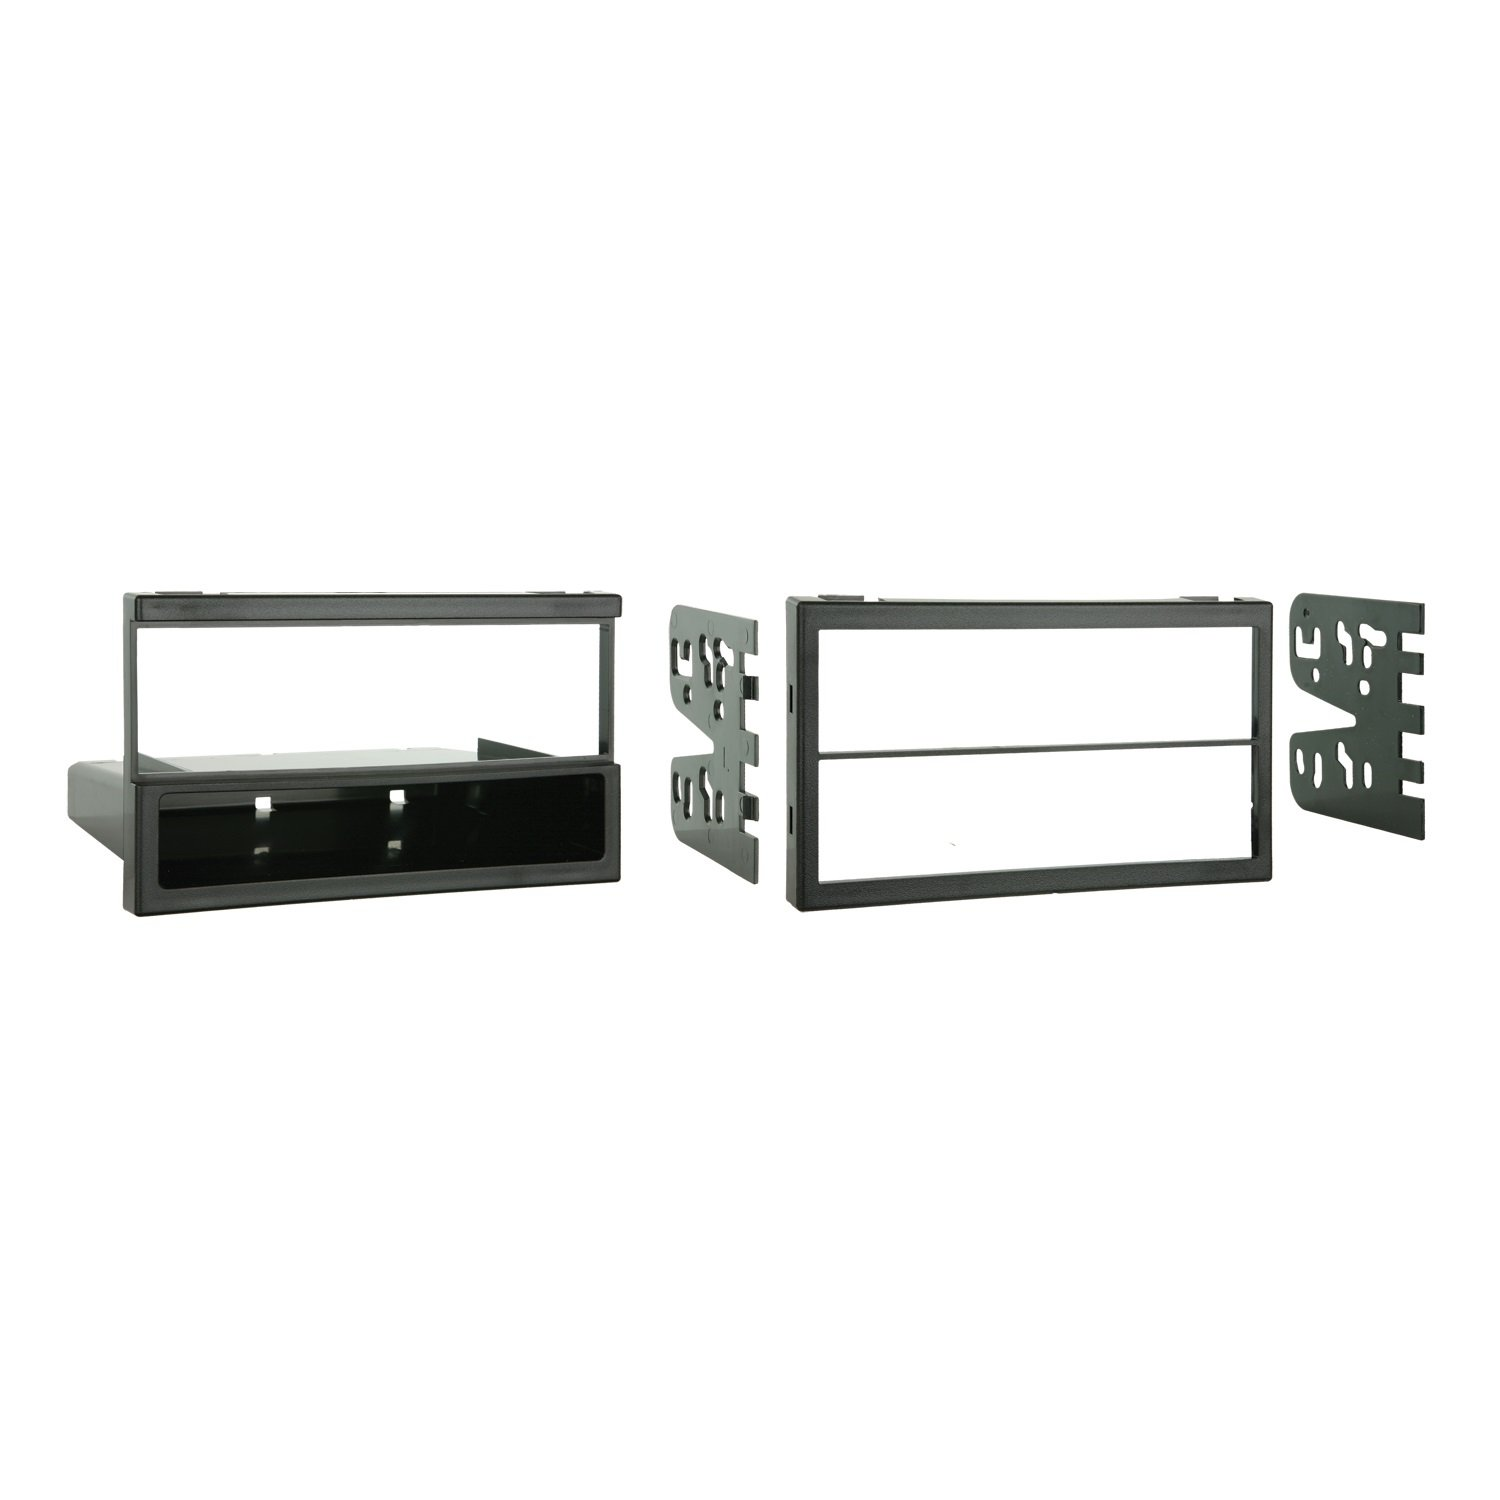 Metra 99-7505 Single or Double DIN Installation Multi-Kit for Select 1994-2006 Mazda Vehicles -Black